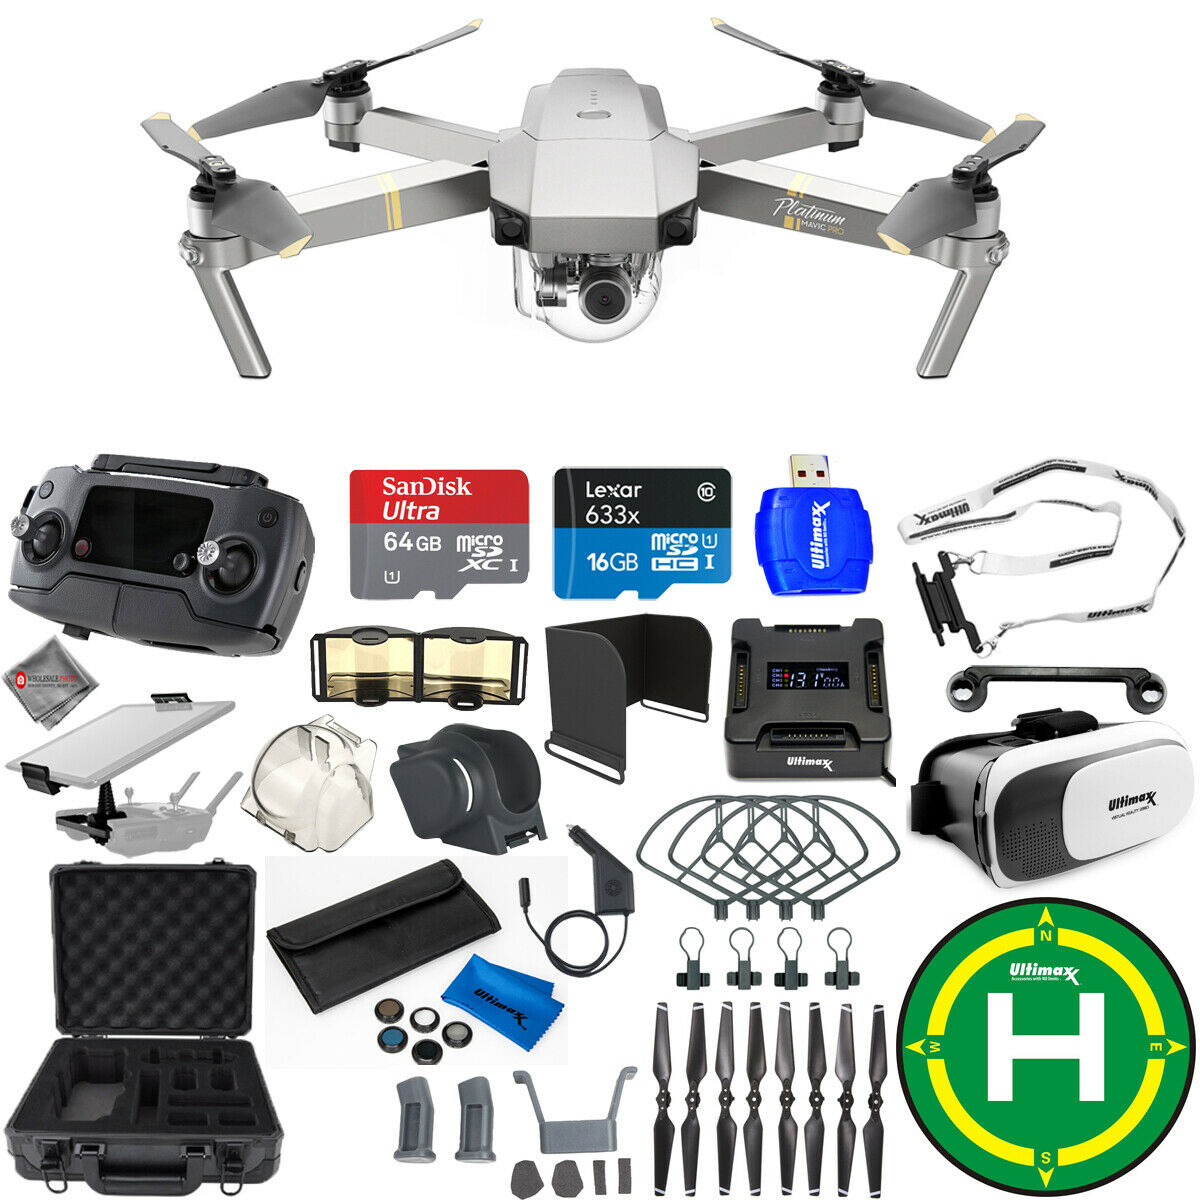 DJI Mavic Pro Platinum Edition Mega Accessory Bundle With Hard Case + Much More